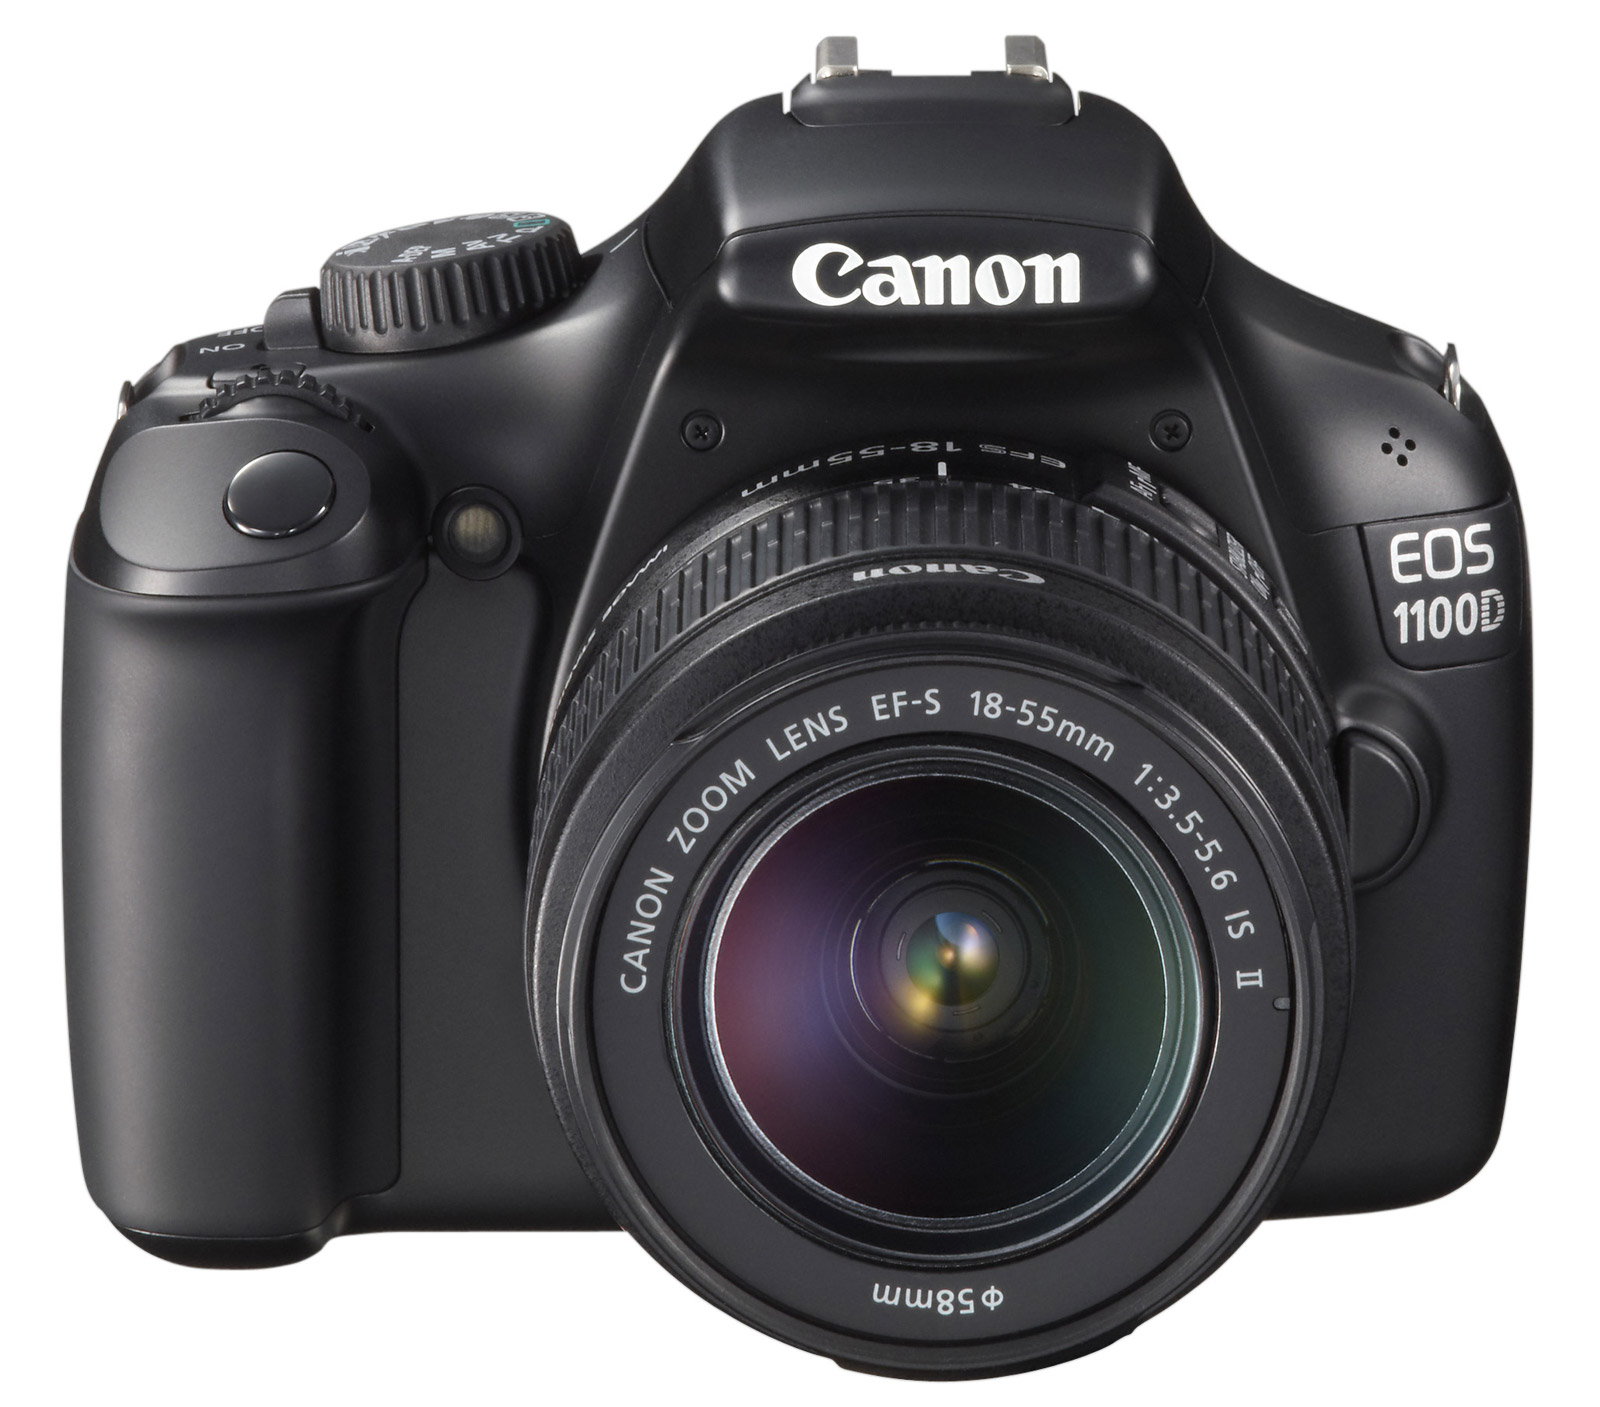 DigiCamReview.com | Canon EOS 1100D DSLR